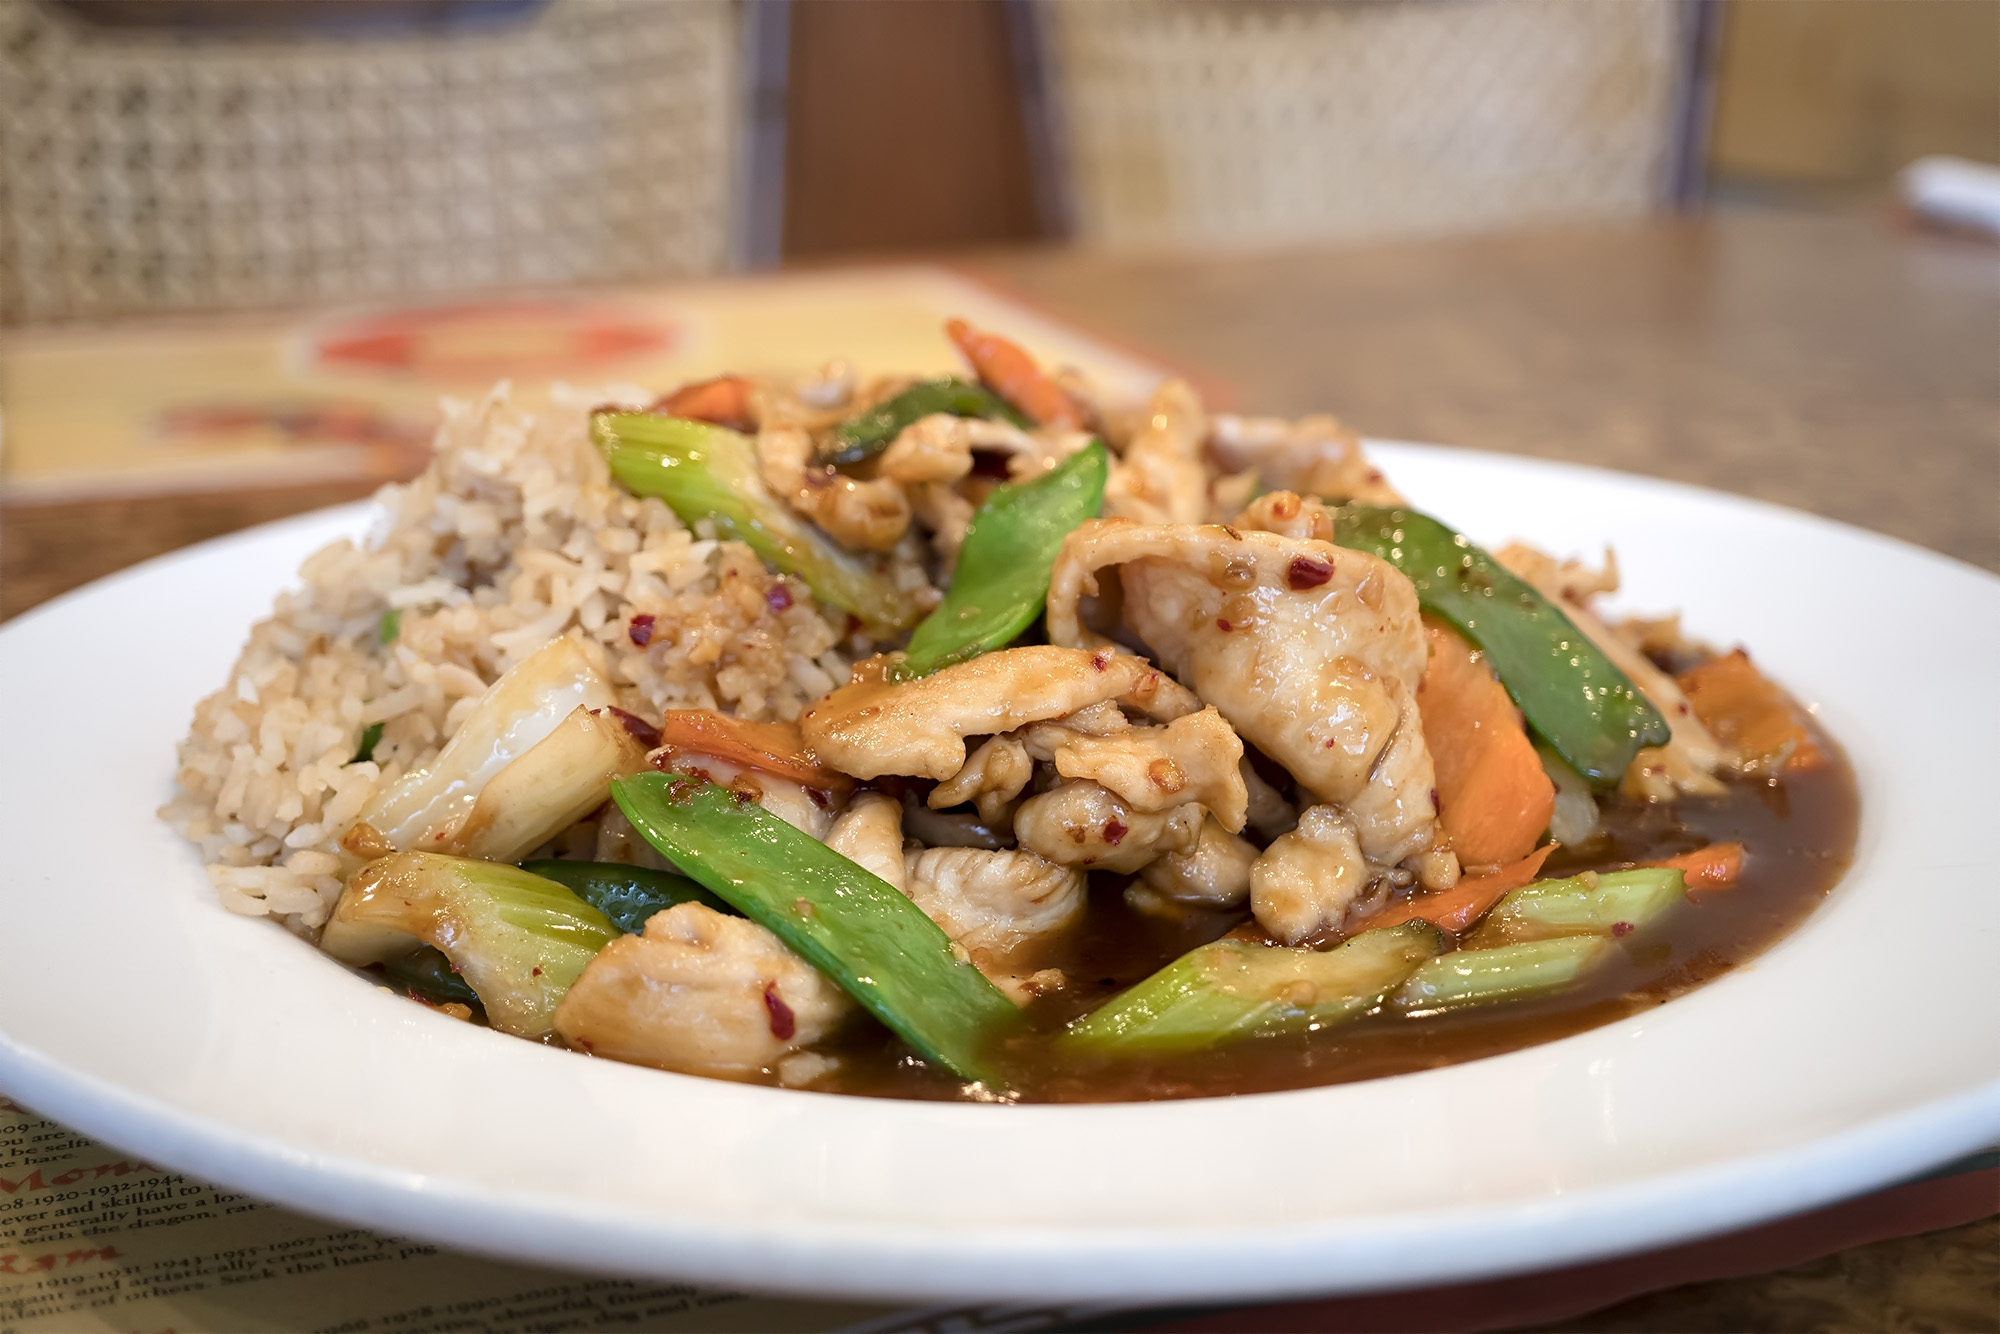 25. Szechuan Chicken Image